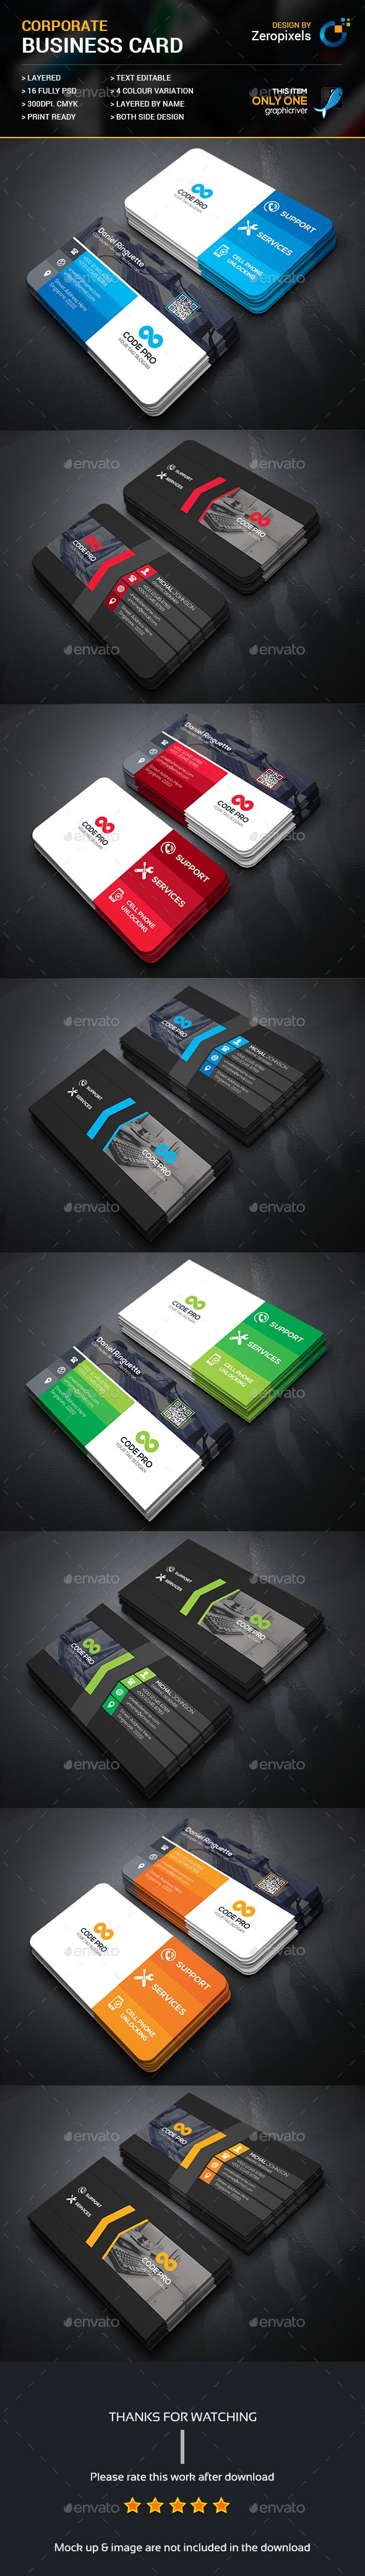 267 best Business Card Visiting Card images on Pinterest